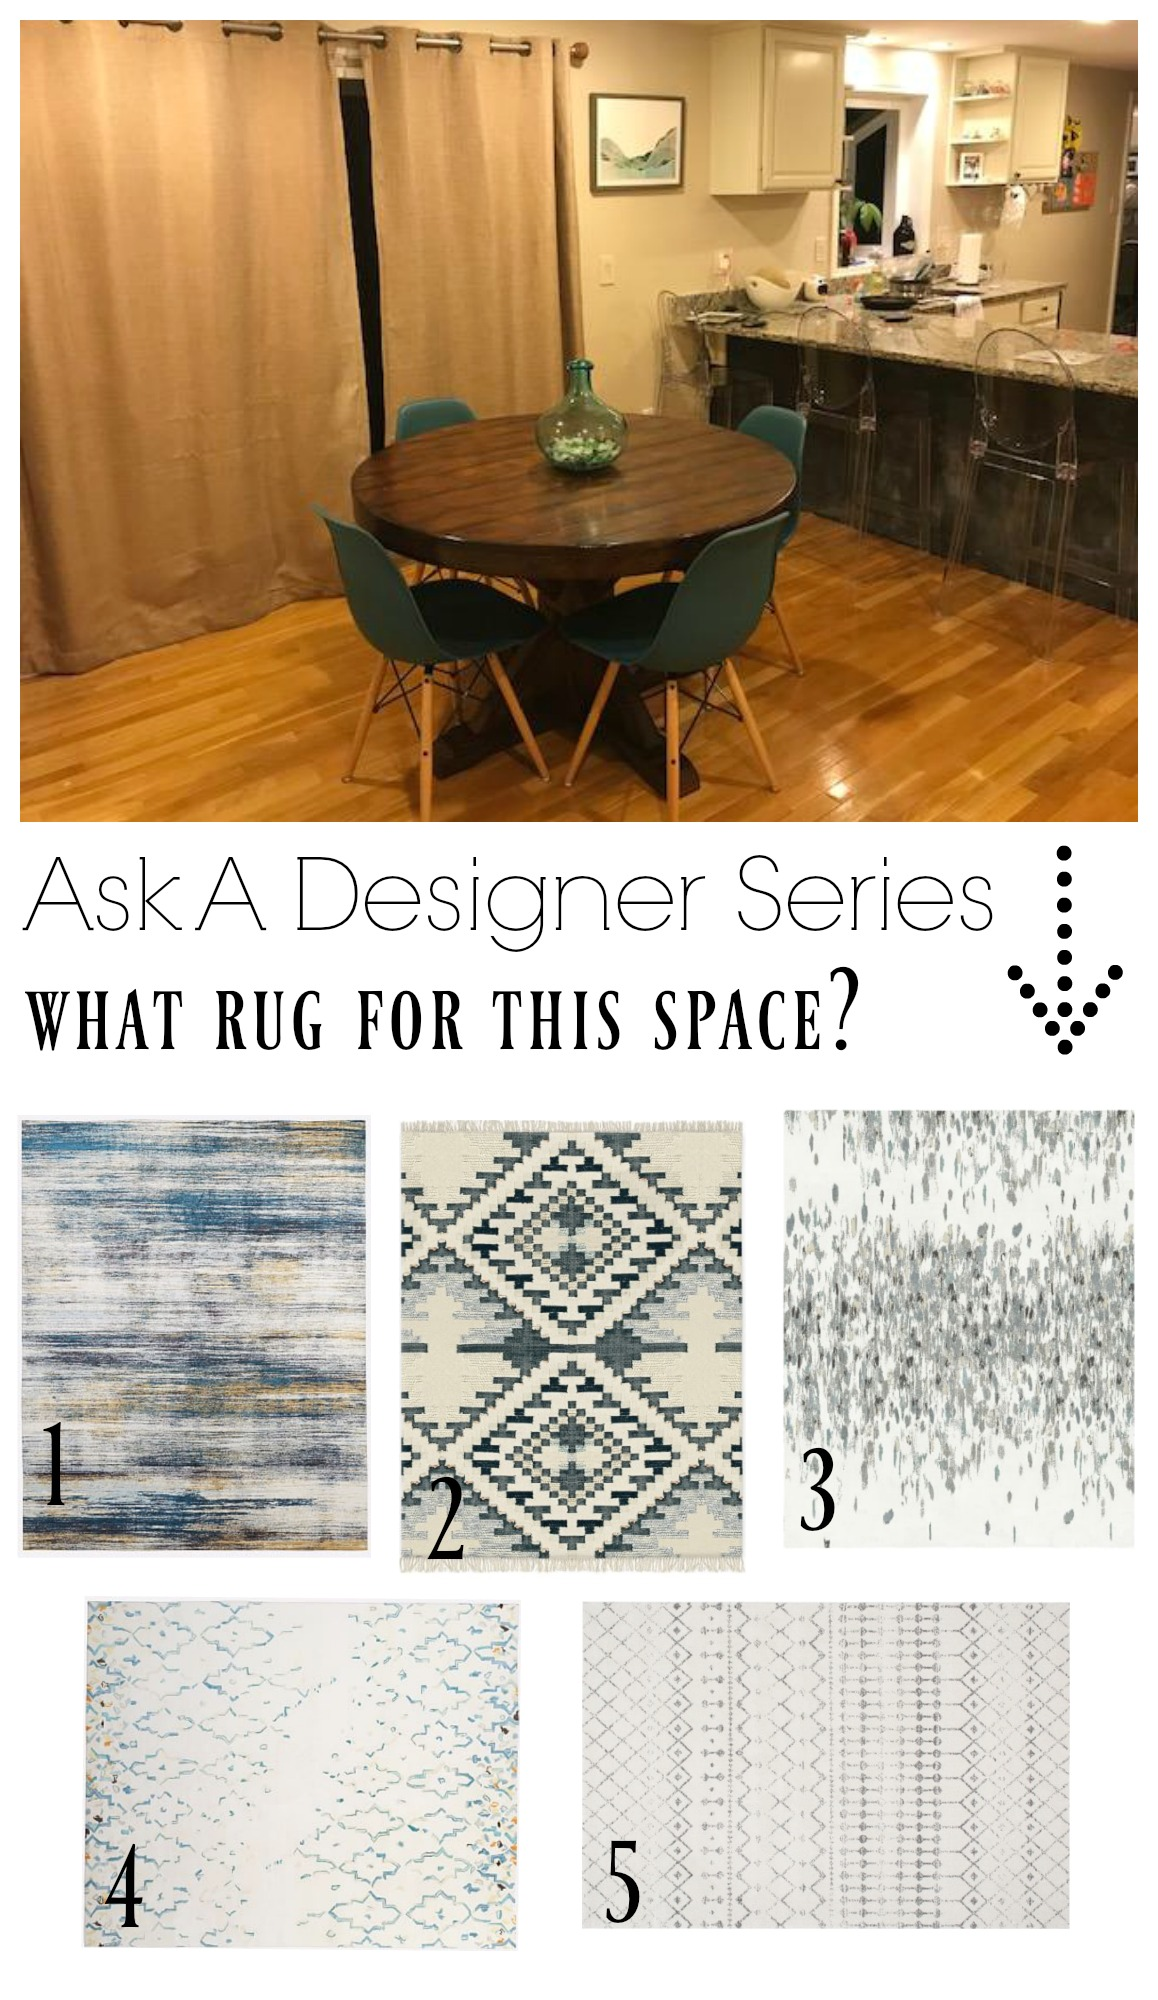 Ask a Designer Series- What rug for this space?